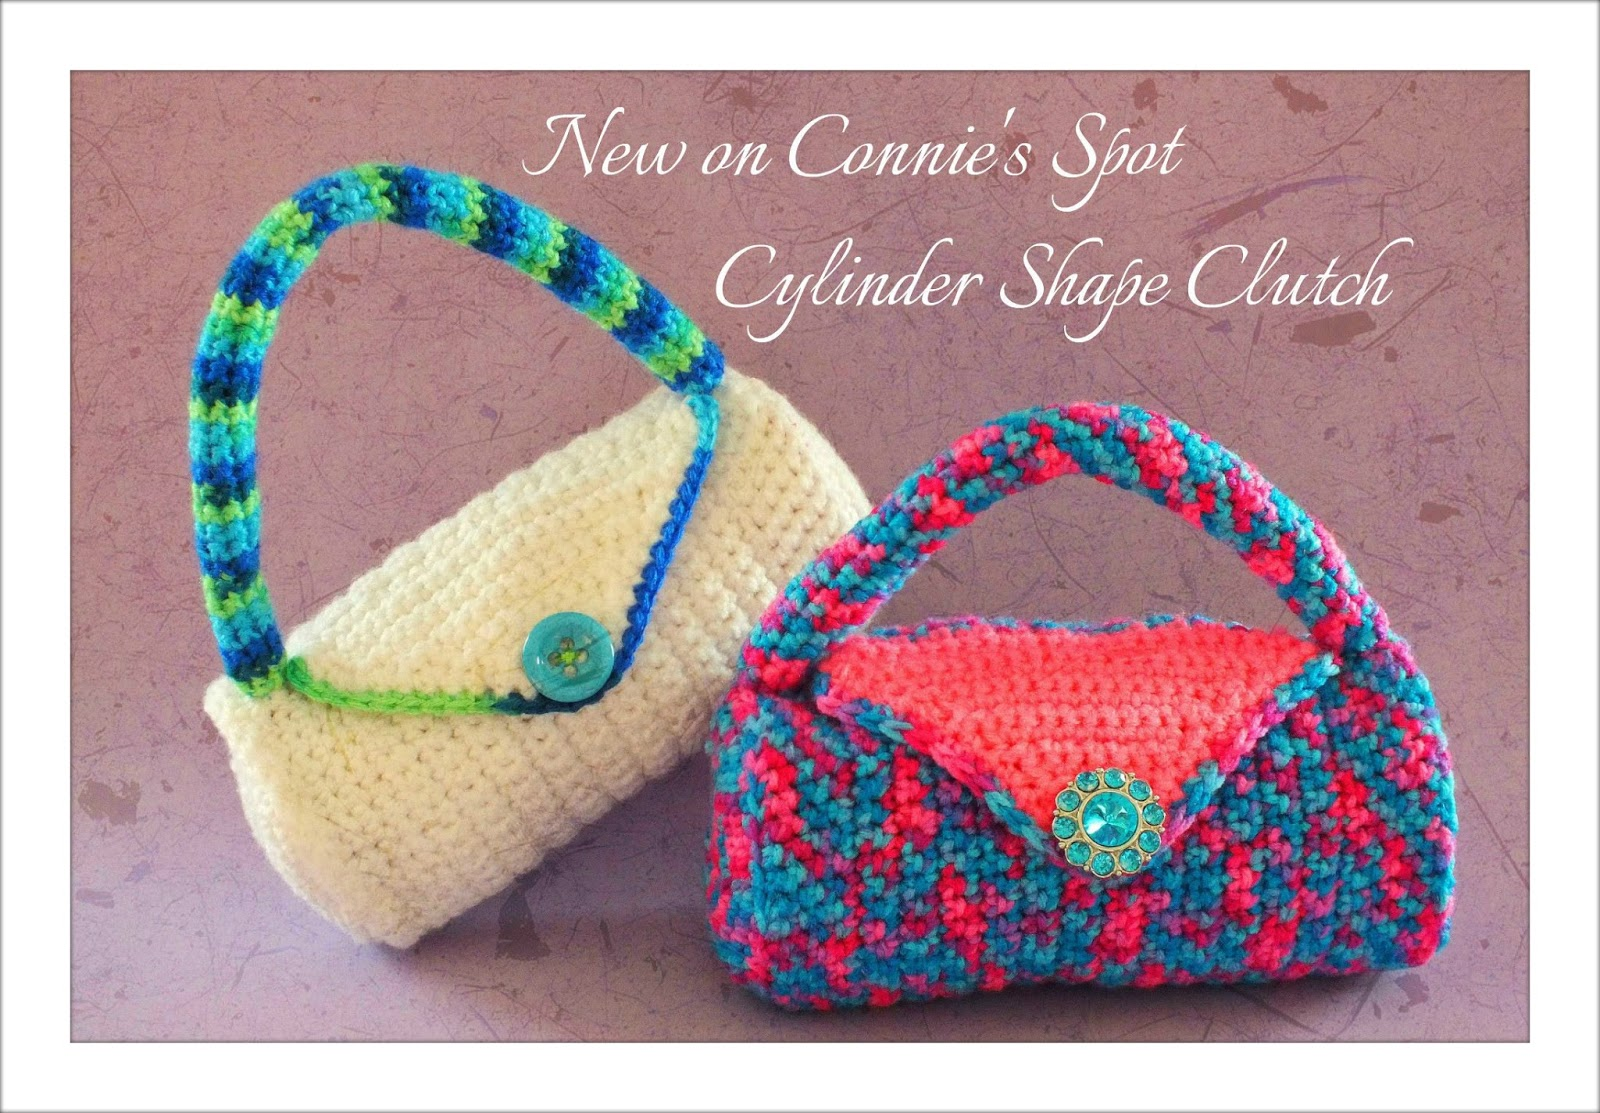 Crochet Clutch Bag Pattern : ... Crocheting, Crafting, Creating!: Free Cylinder Clutch Bag Pattern